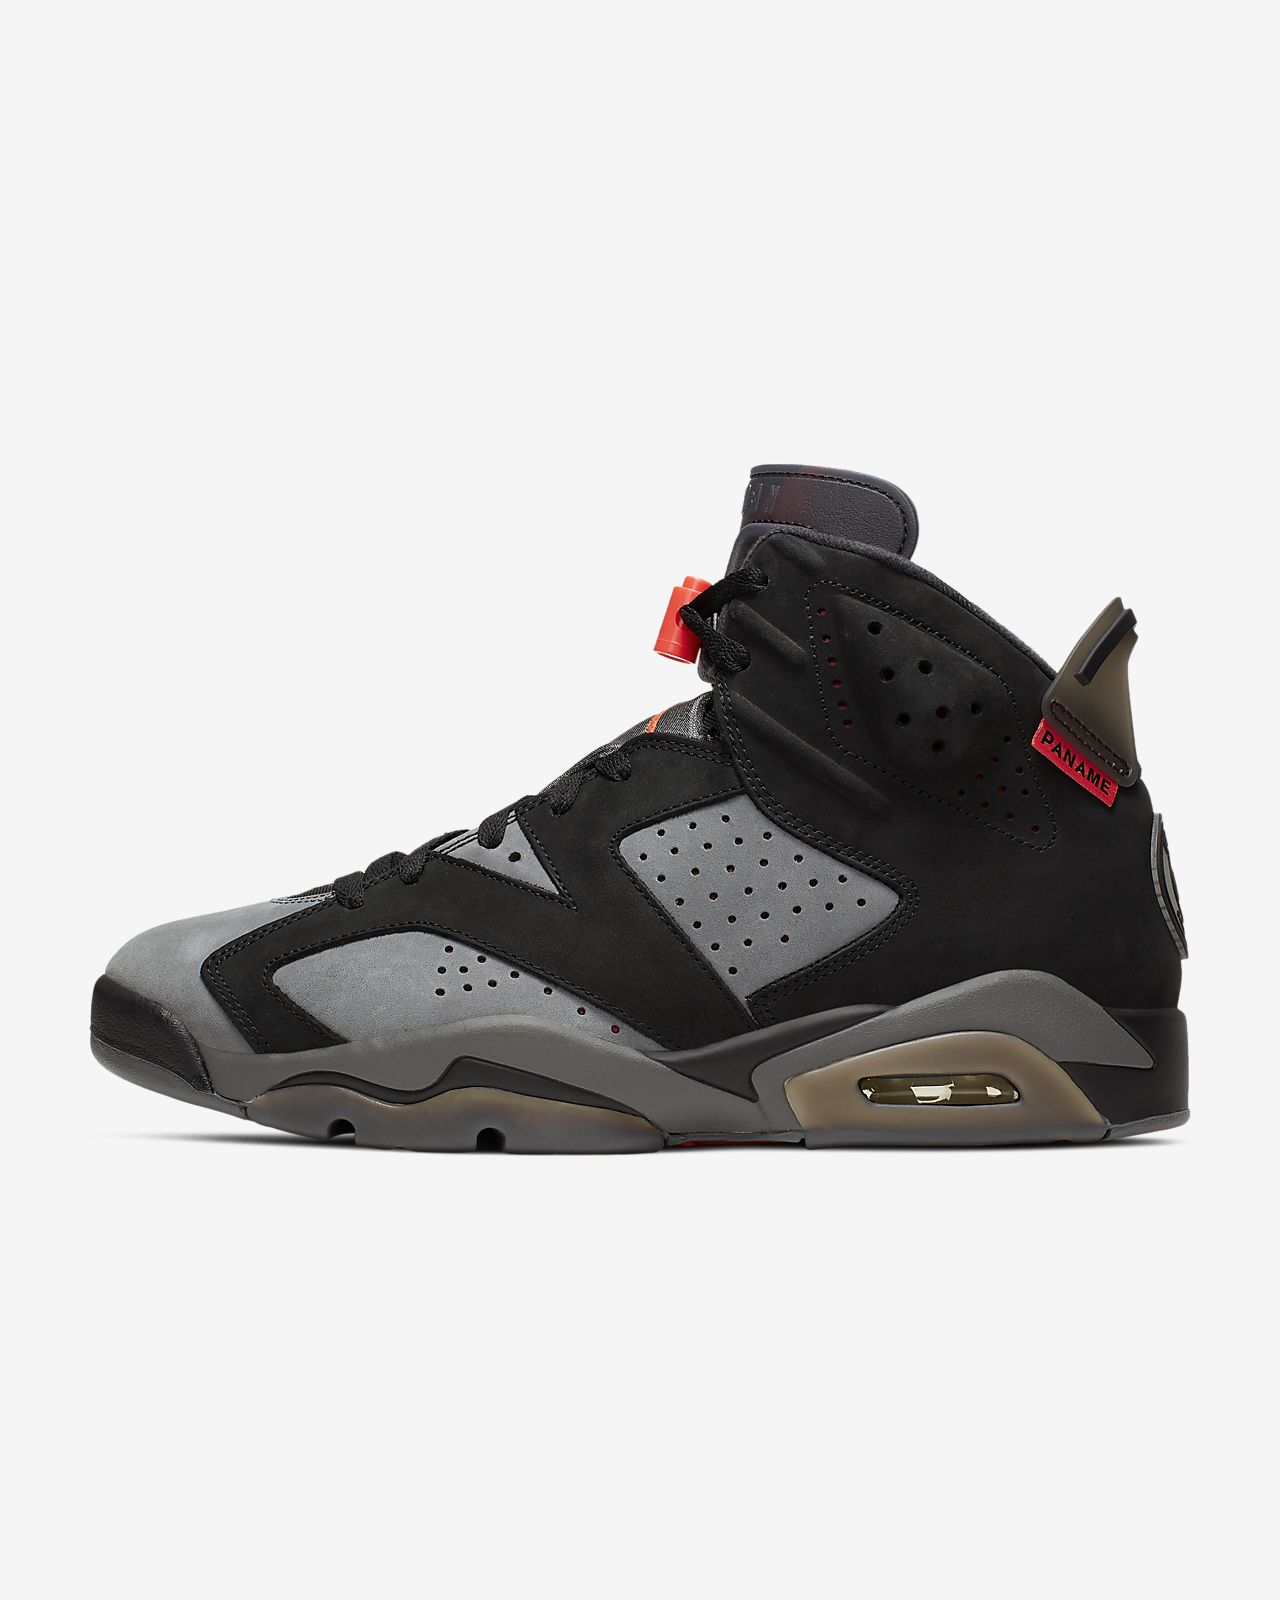 Air Jordan 6 Retro Paris Saint-Germain 男鞋